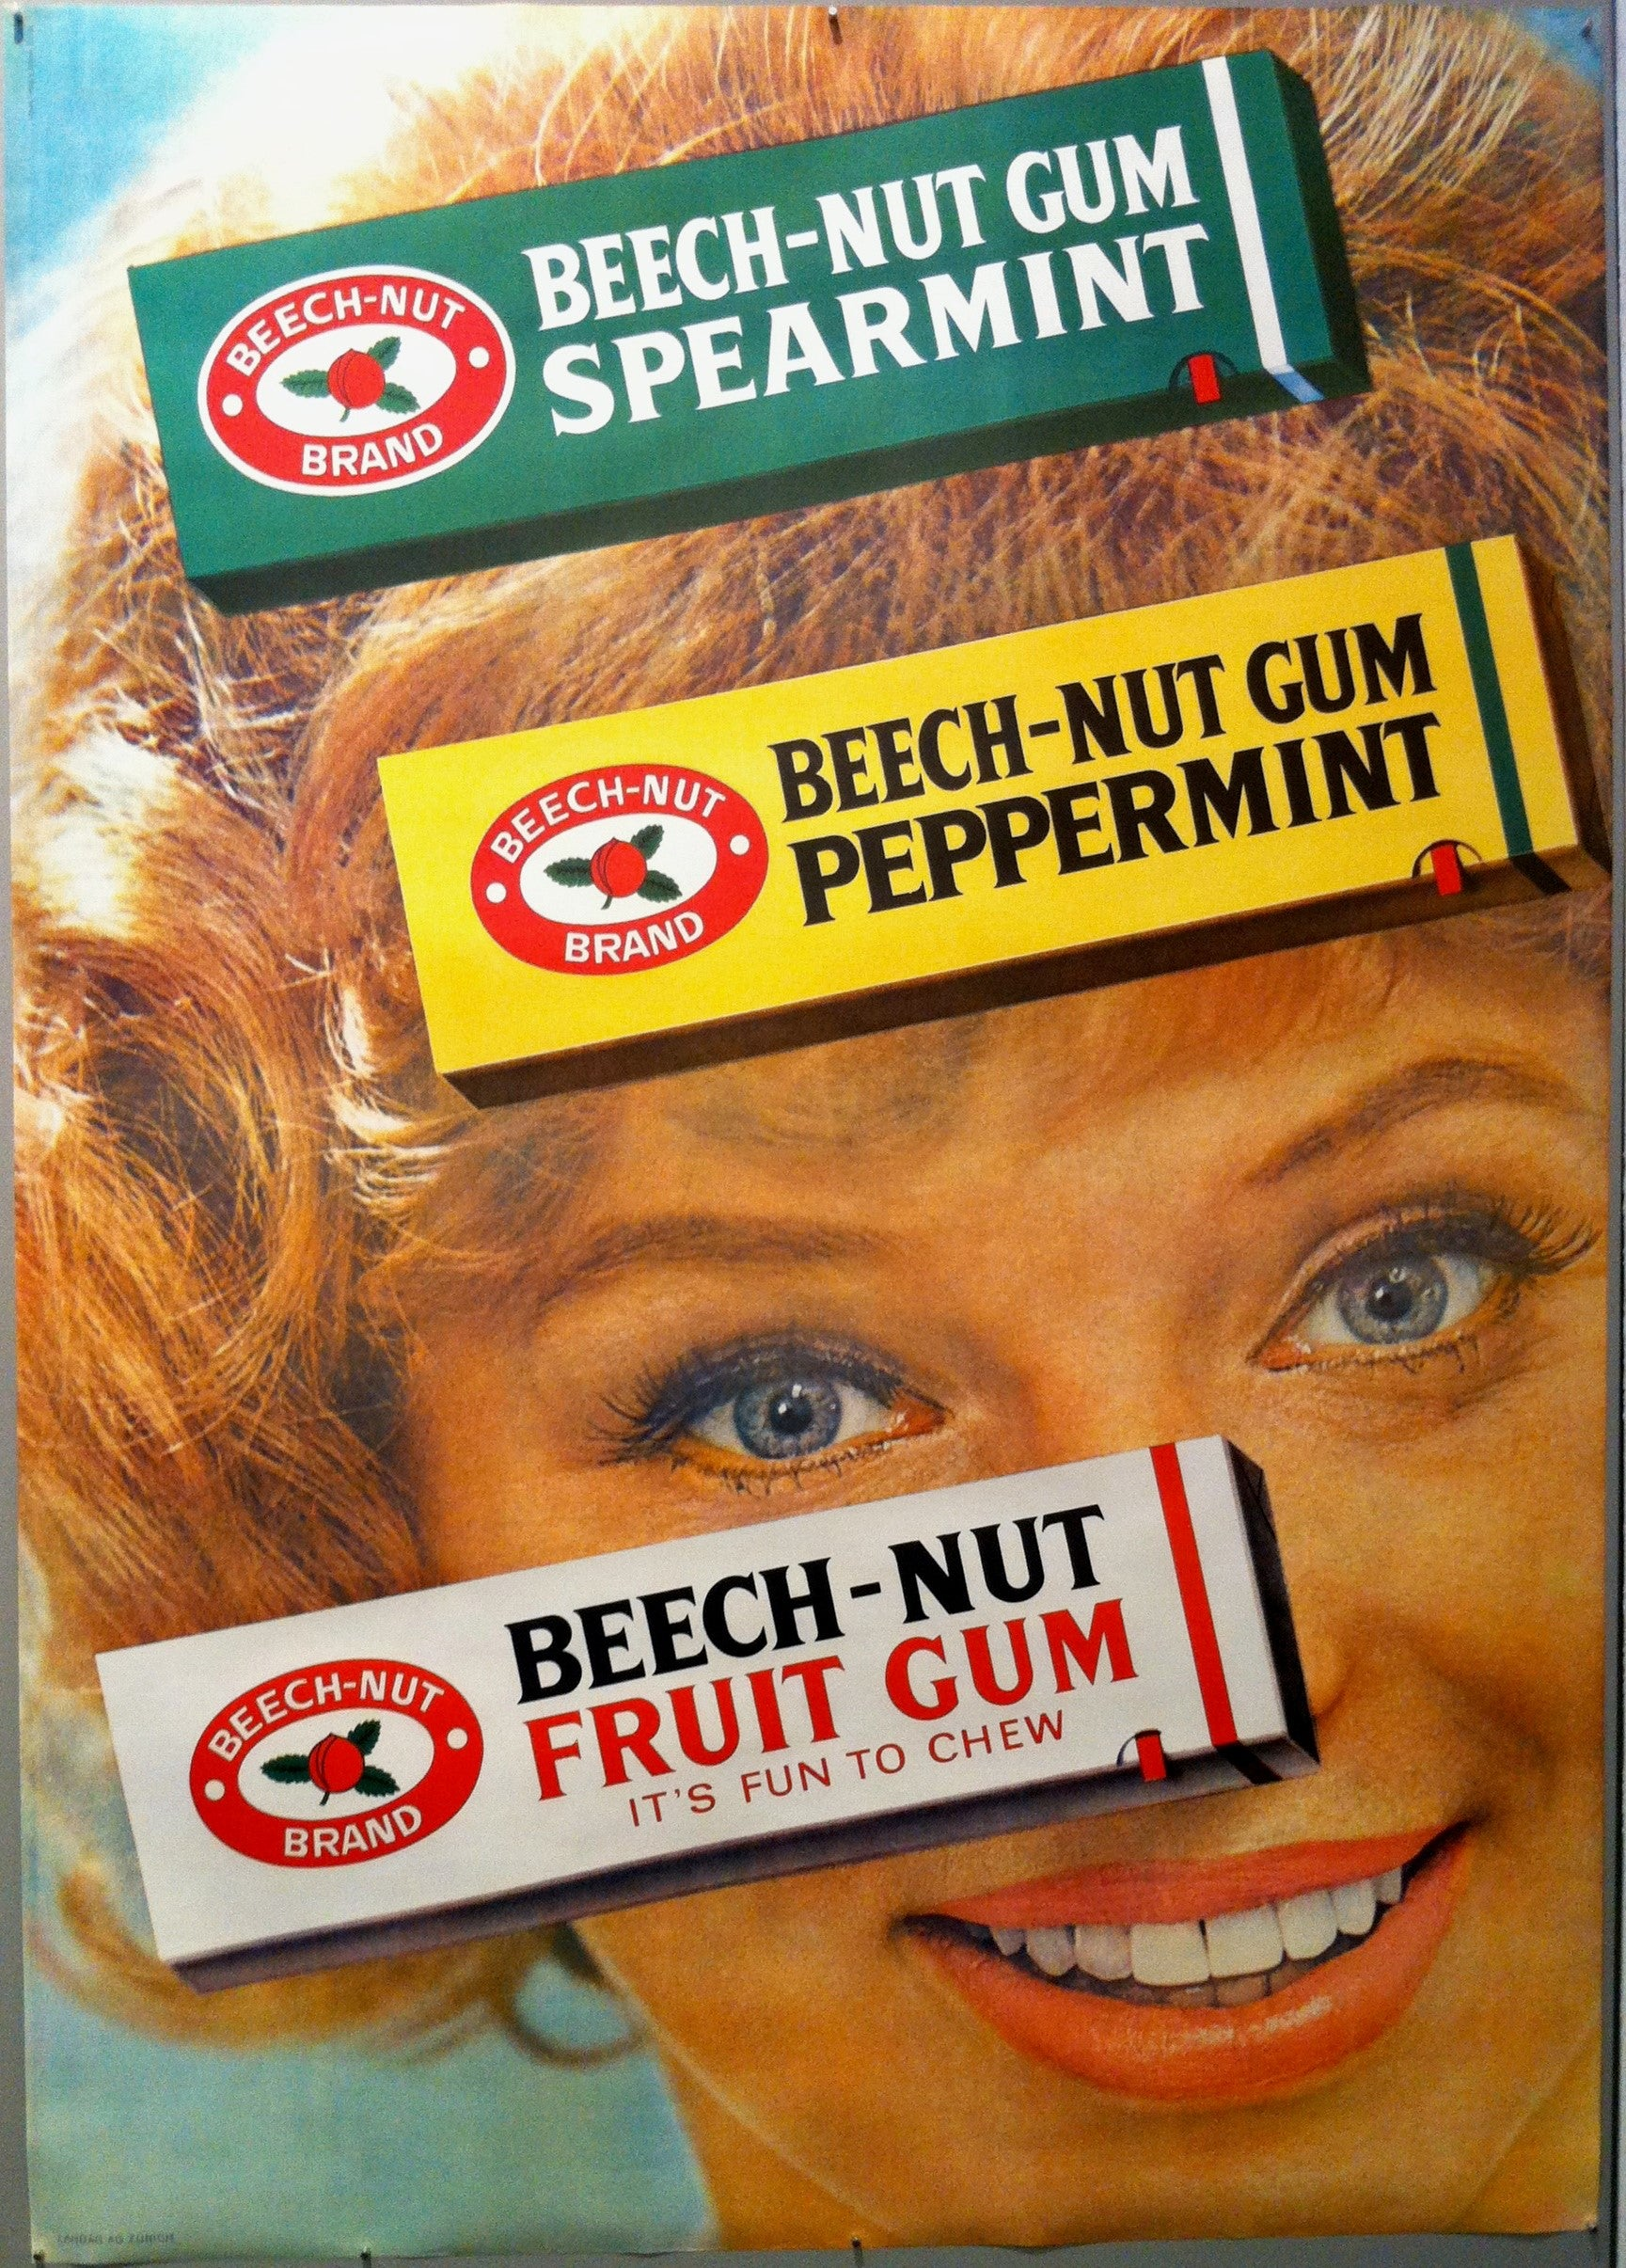 Beech-Nut Gum Spearmint/Peppermint/Fruit Gum